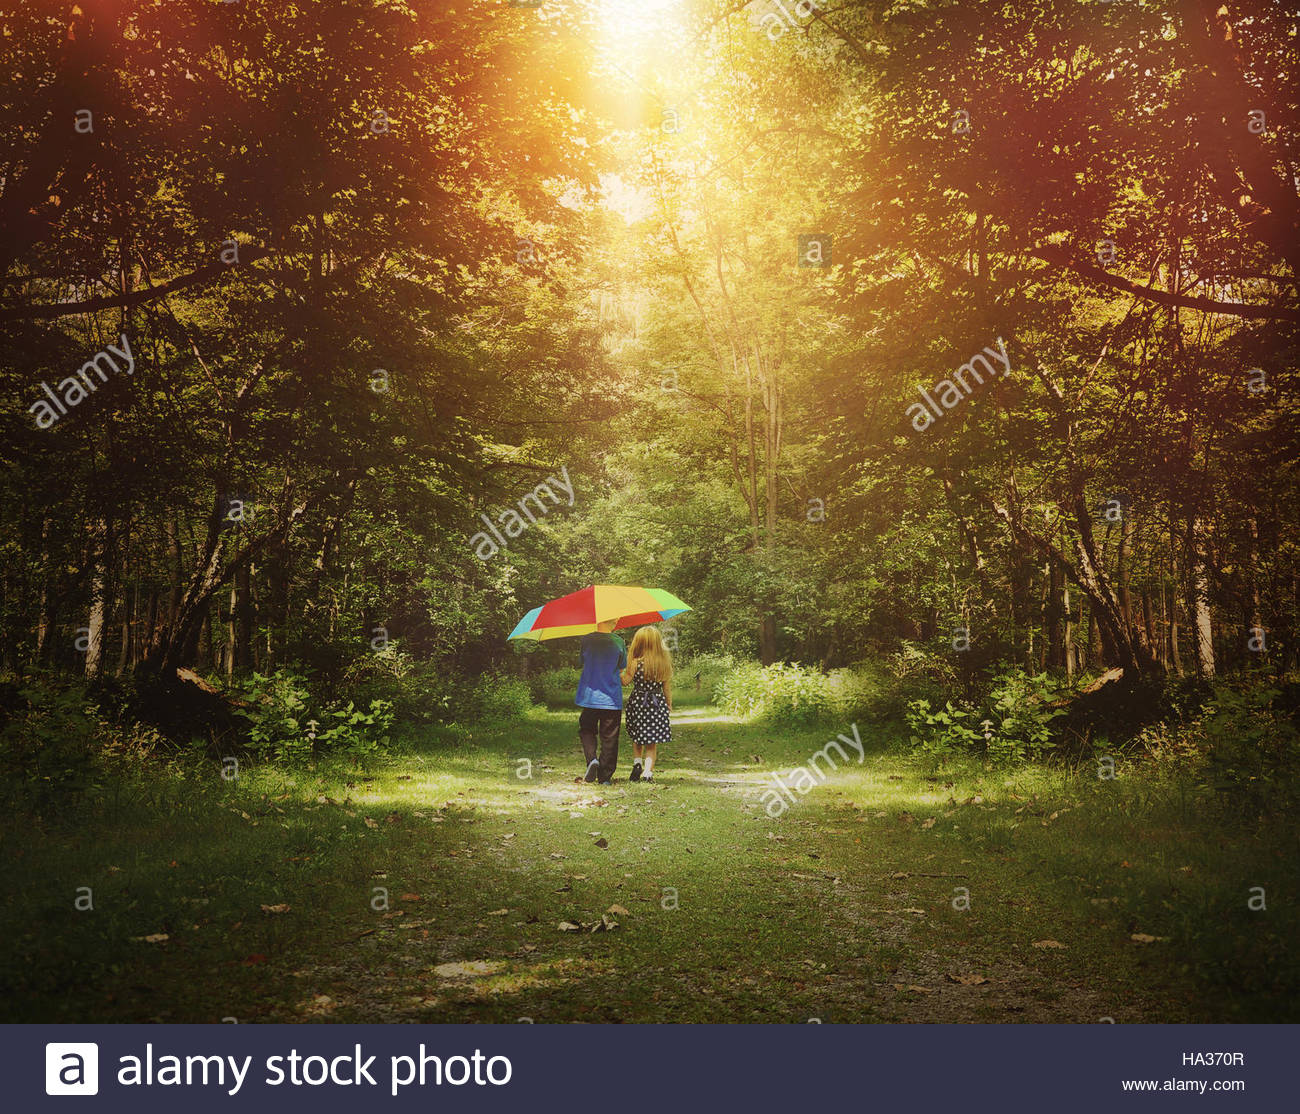 Two children are walking down a sunshine trail in the woods holding a rainbow umbrella for a friendship, hope or - Stock Image